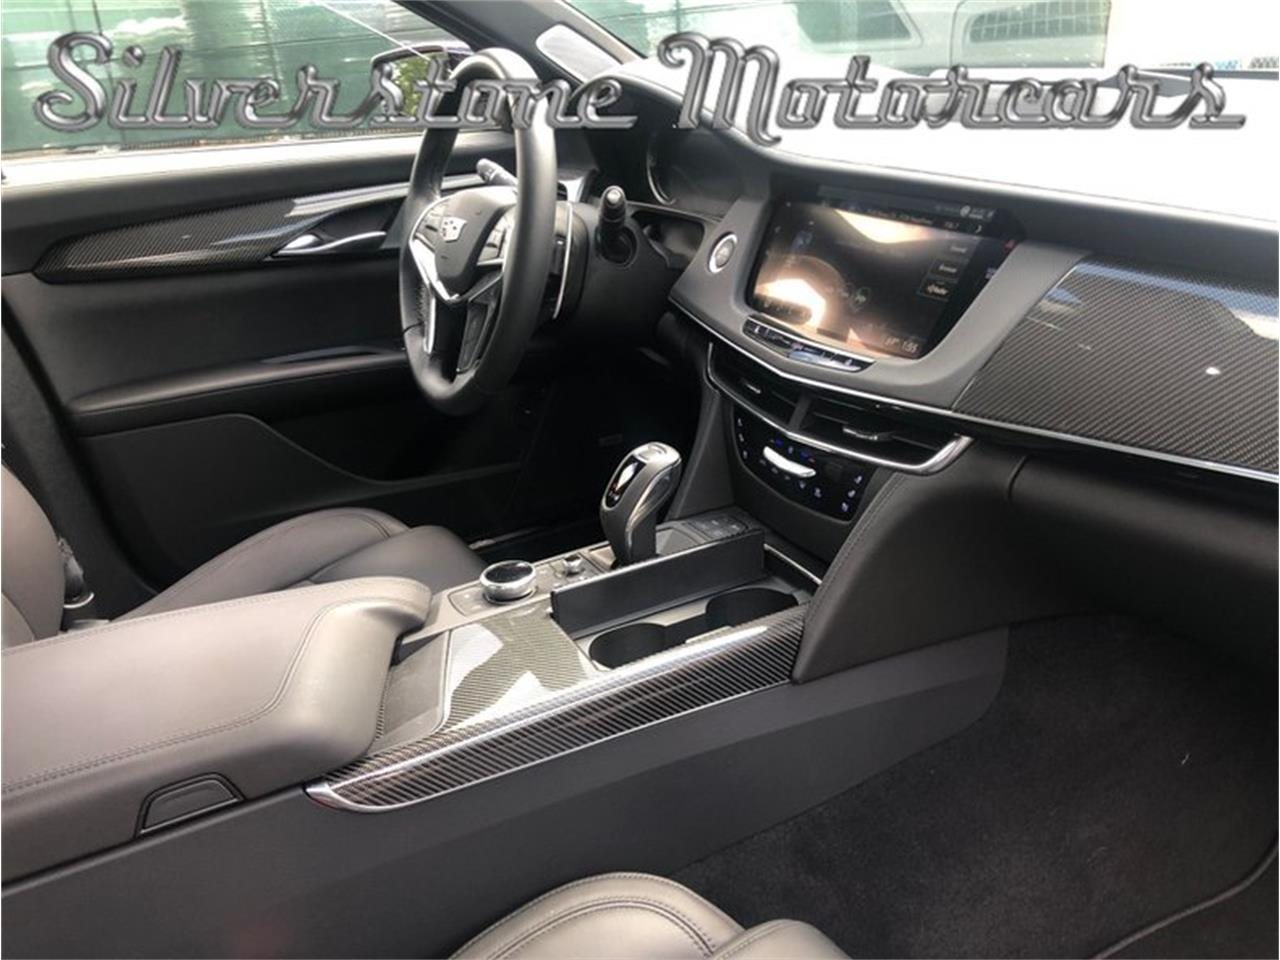 2019 Cadillac CT6 (CC-1374279) for sale in North Andover, Massachusetts